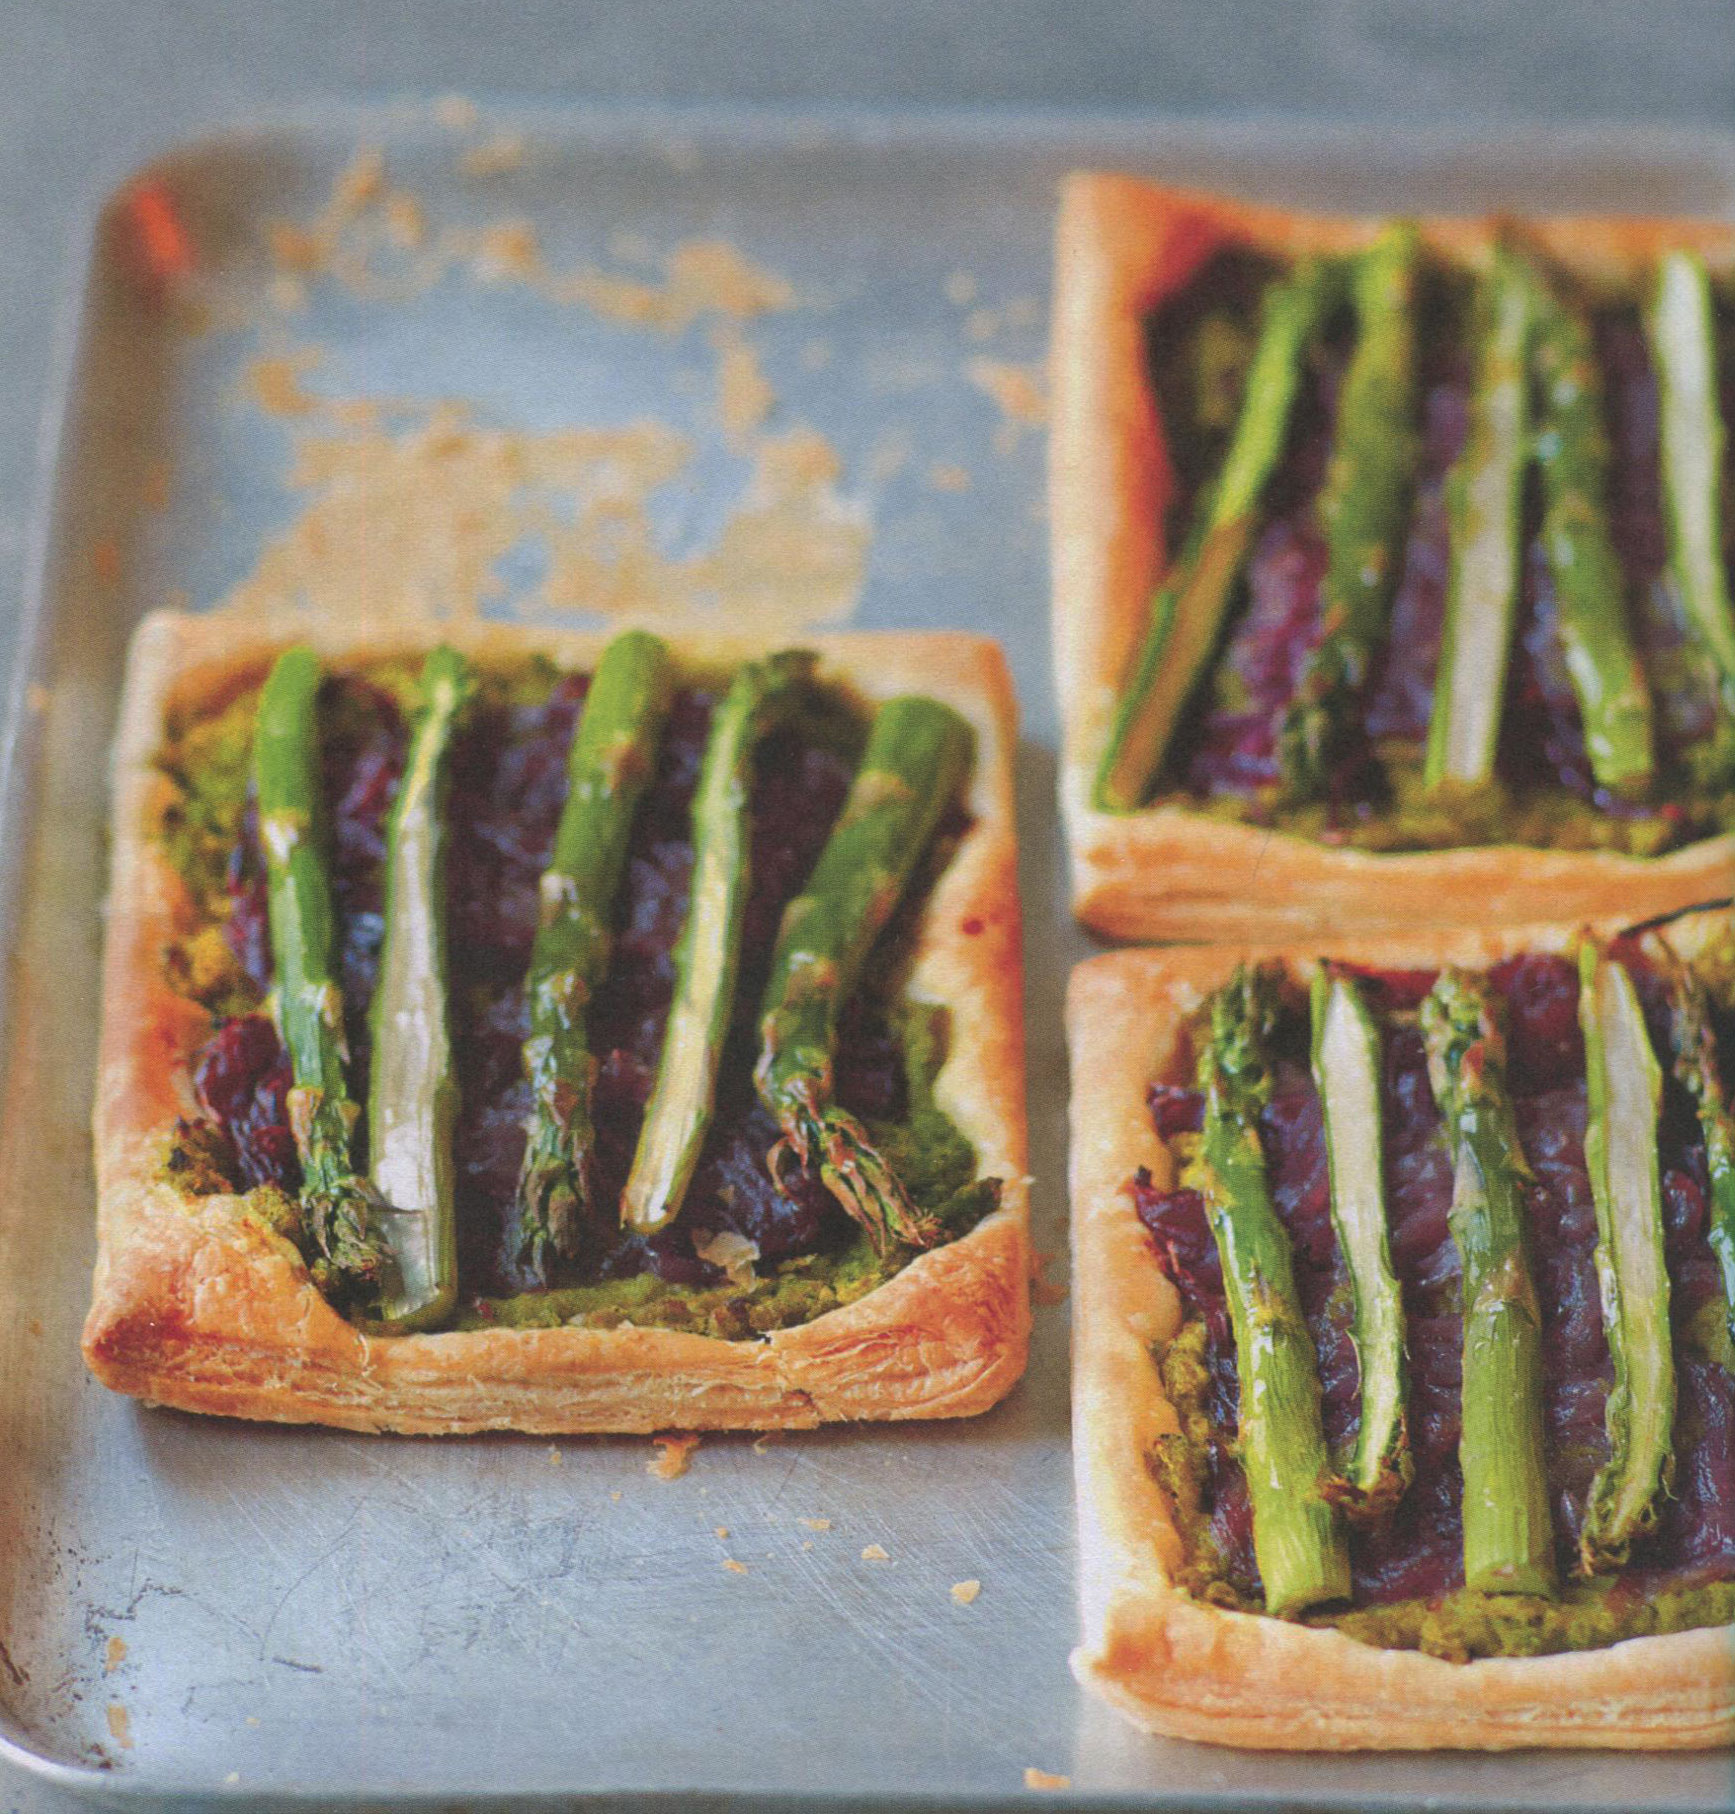 TBT Recipe: Asparagus, Minted Peas, and Caramelized Red Onion Tart